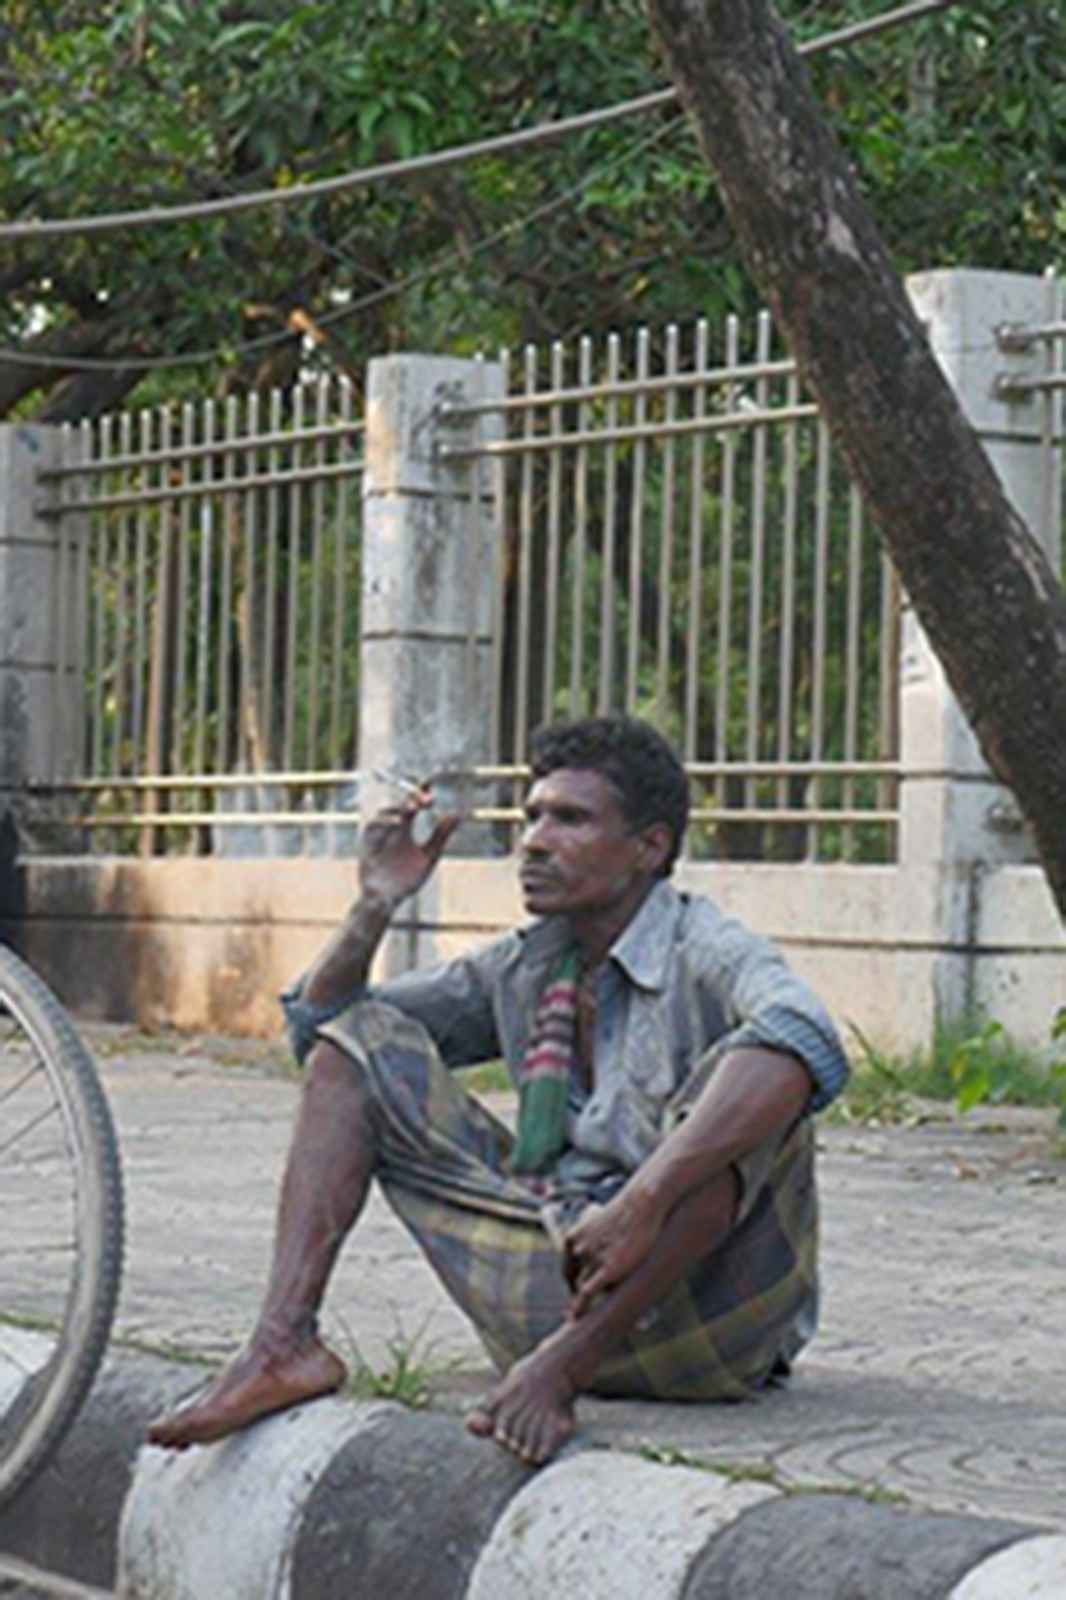 Man smoking a cigarette in the street